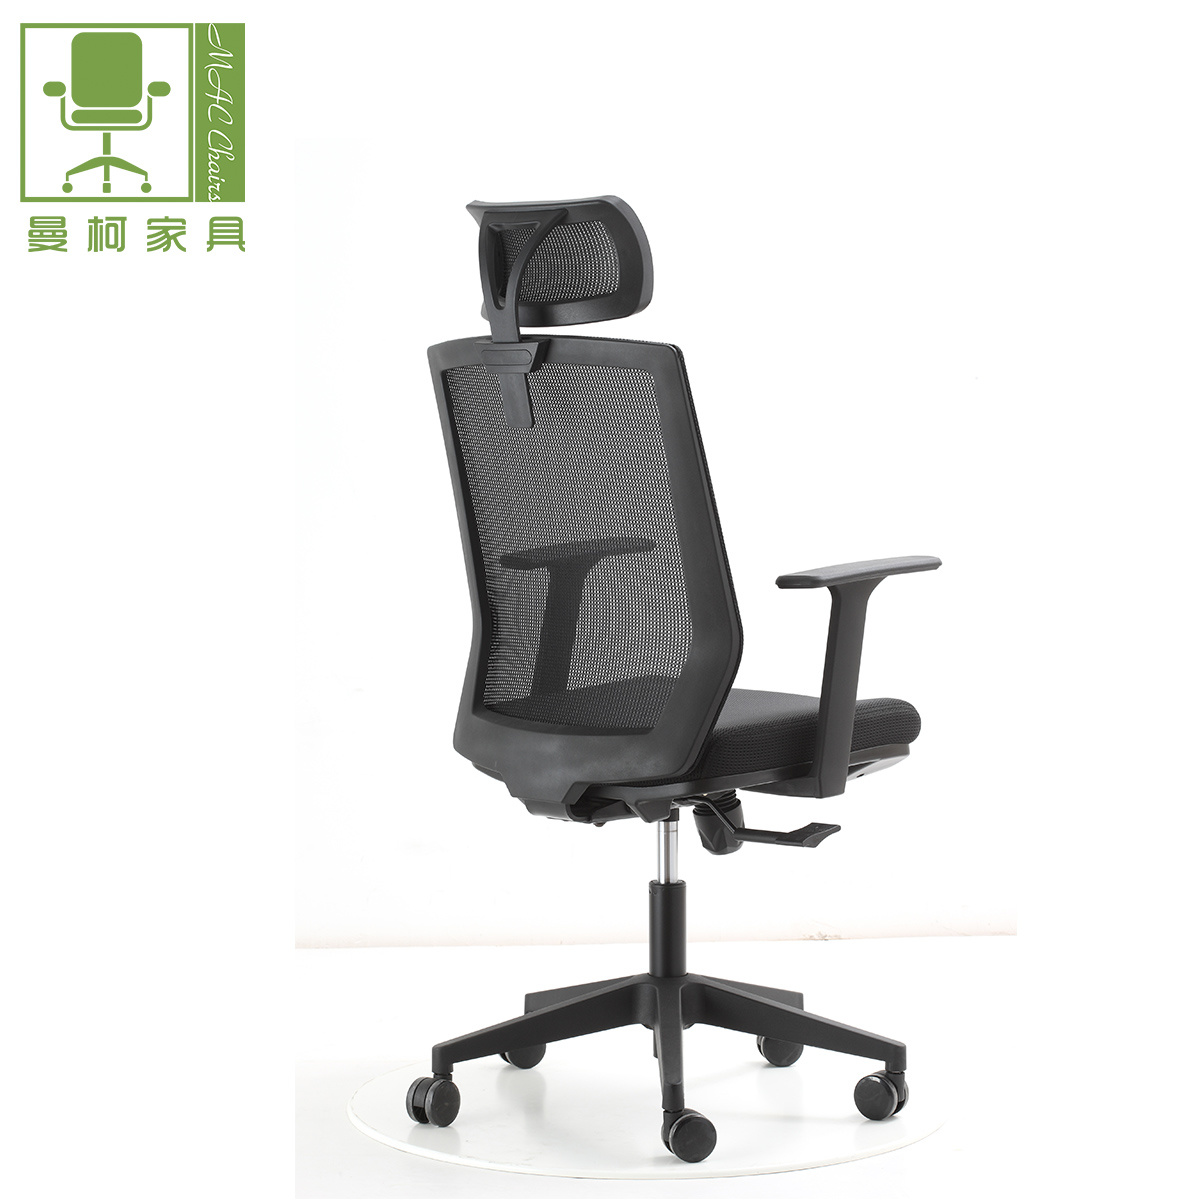 Best Quality Office Furniture High Back Mesh Office Desk Chair China Modern Chair Swivel Chair Made In China Com